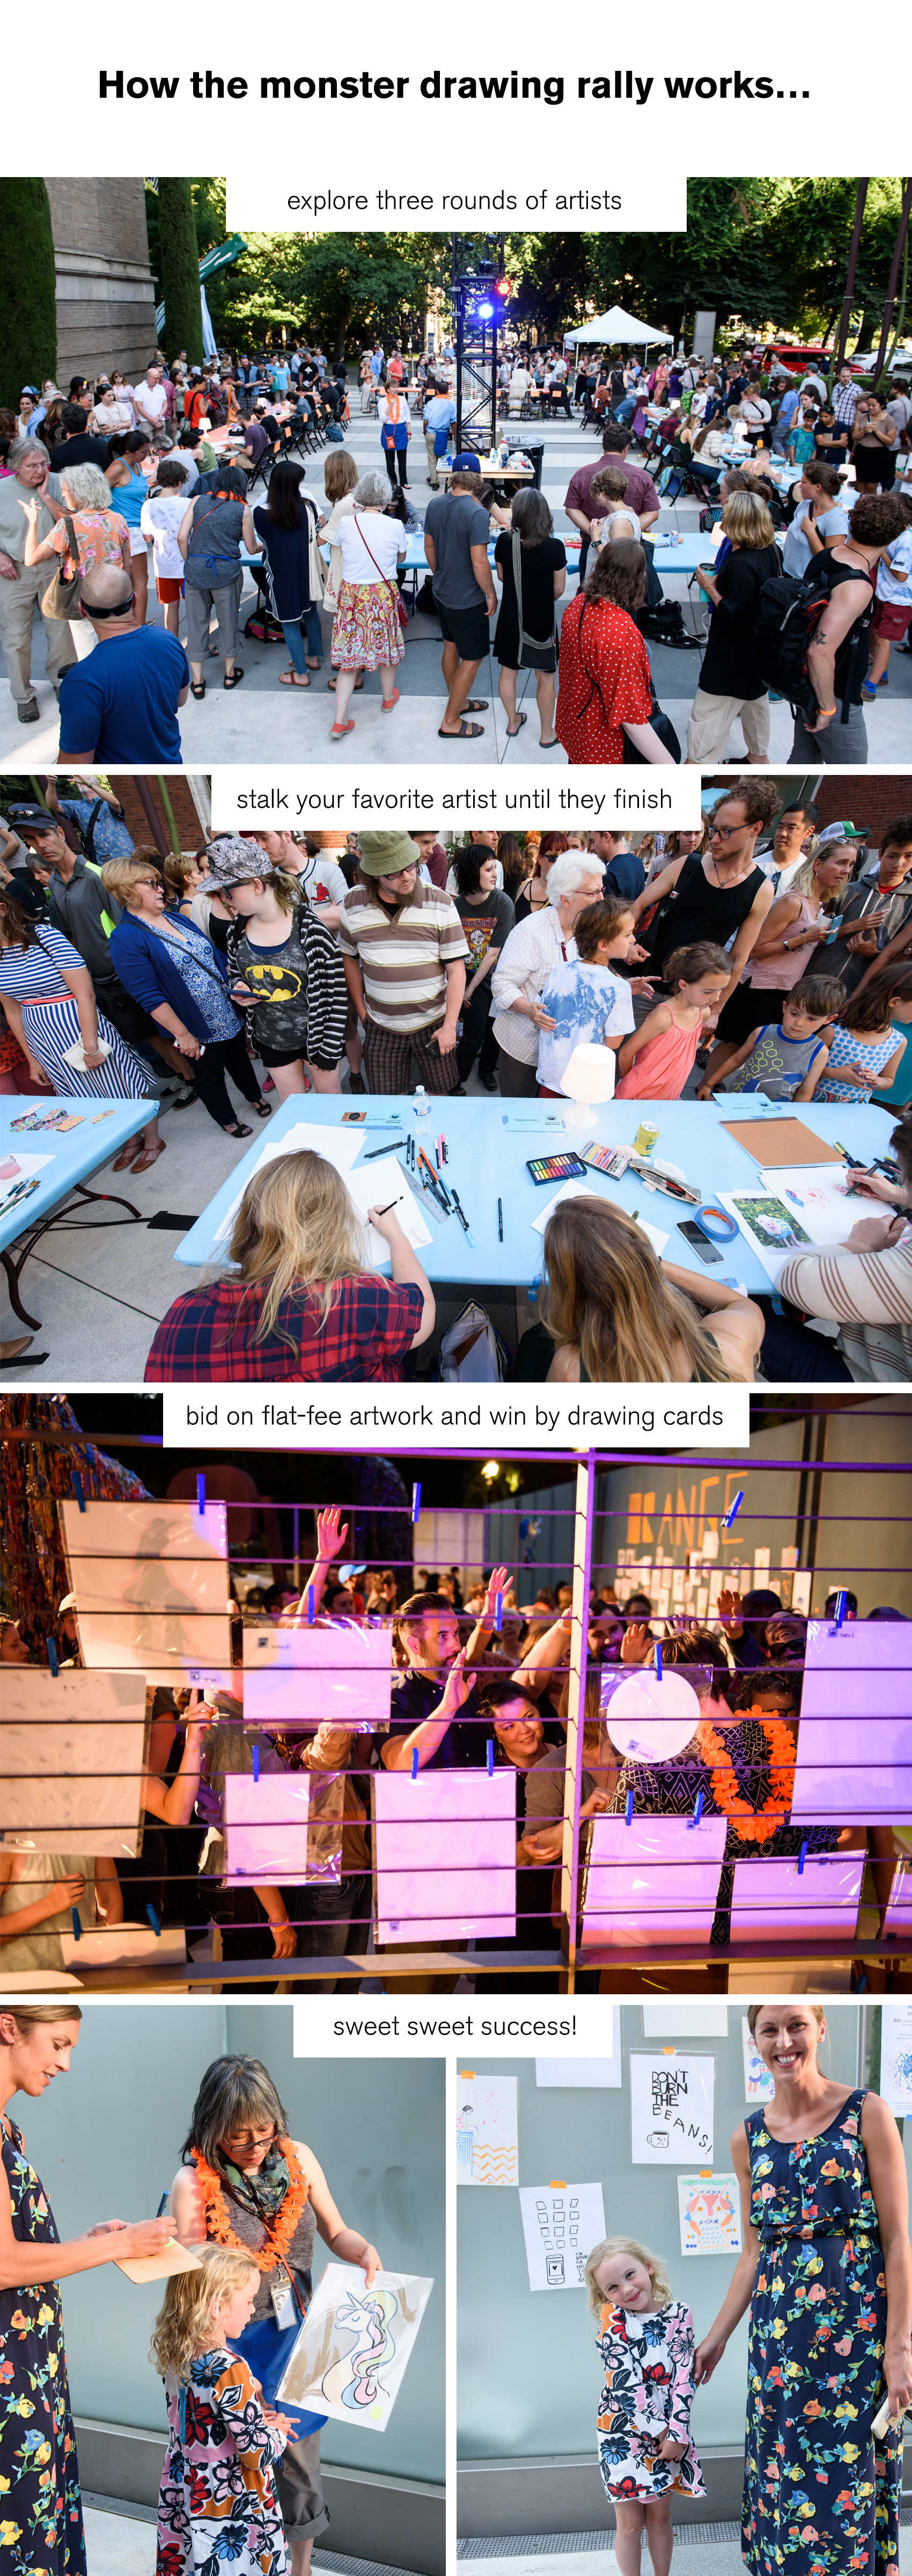 Portland Art Museum's Monster Drawing Rally 2017 - first: check out all the artists, second: stalk your favorites until they finish a piece of artwork, third: bid on flat-fee artwork and win by drawing cards, fourth: sweet sweet success!